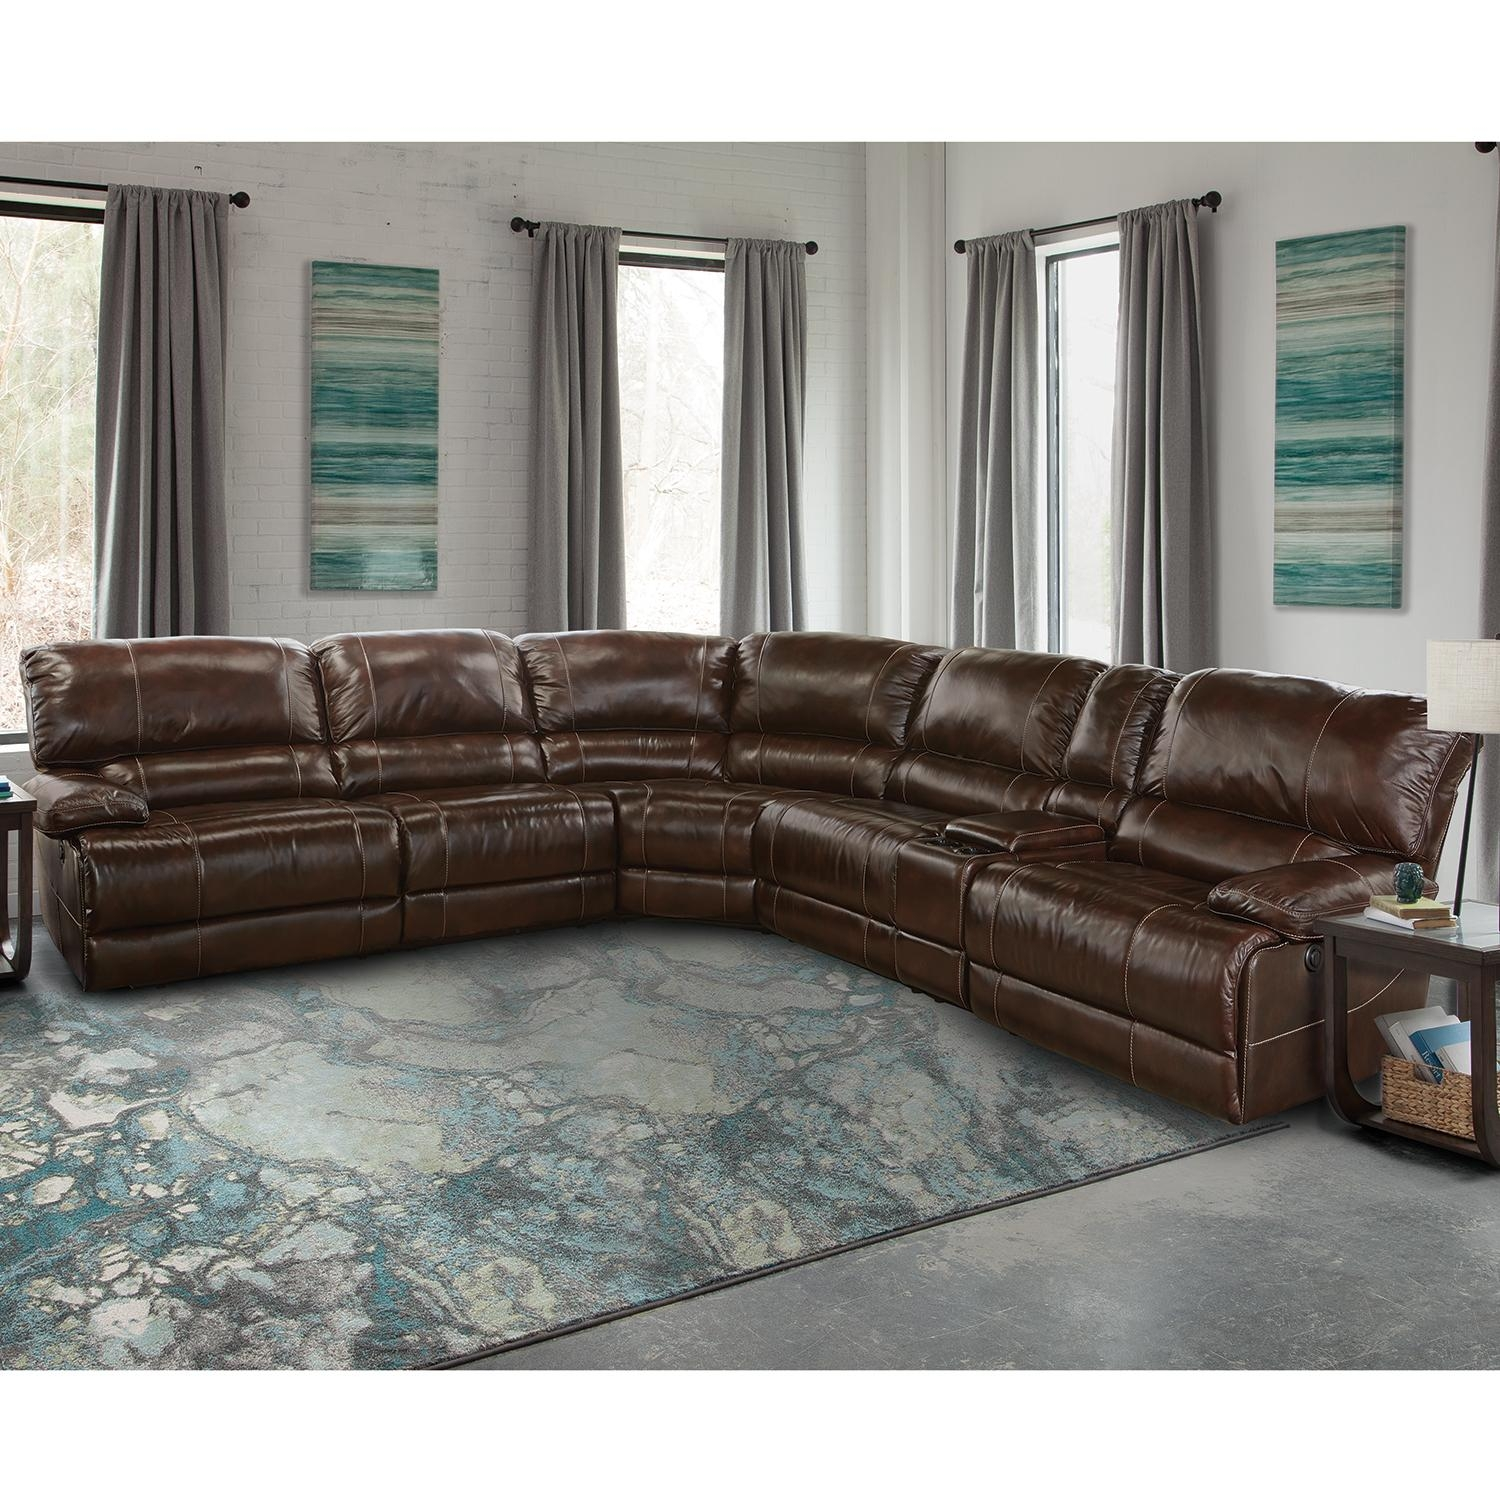 Parker House Msha 6Pc Sectional Shaw 6 Piece Sectional Sofa In Within 6 Piece Leather Sectional Sofa (View 6 of 15)